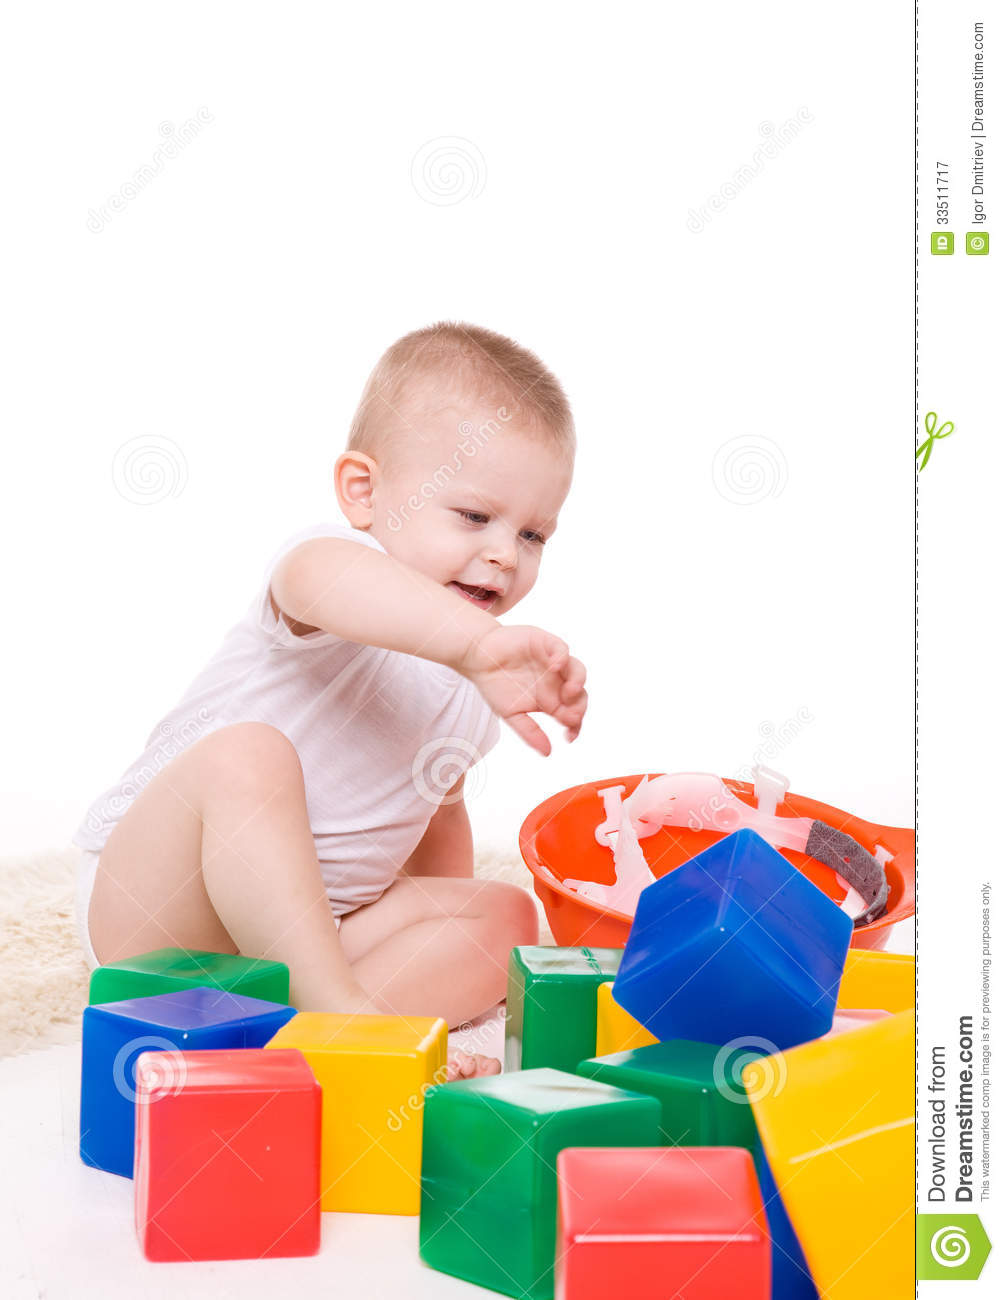 Boy Toys Background : Baby boy plays with toy blocks royalty free stock